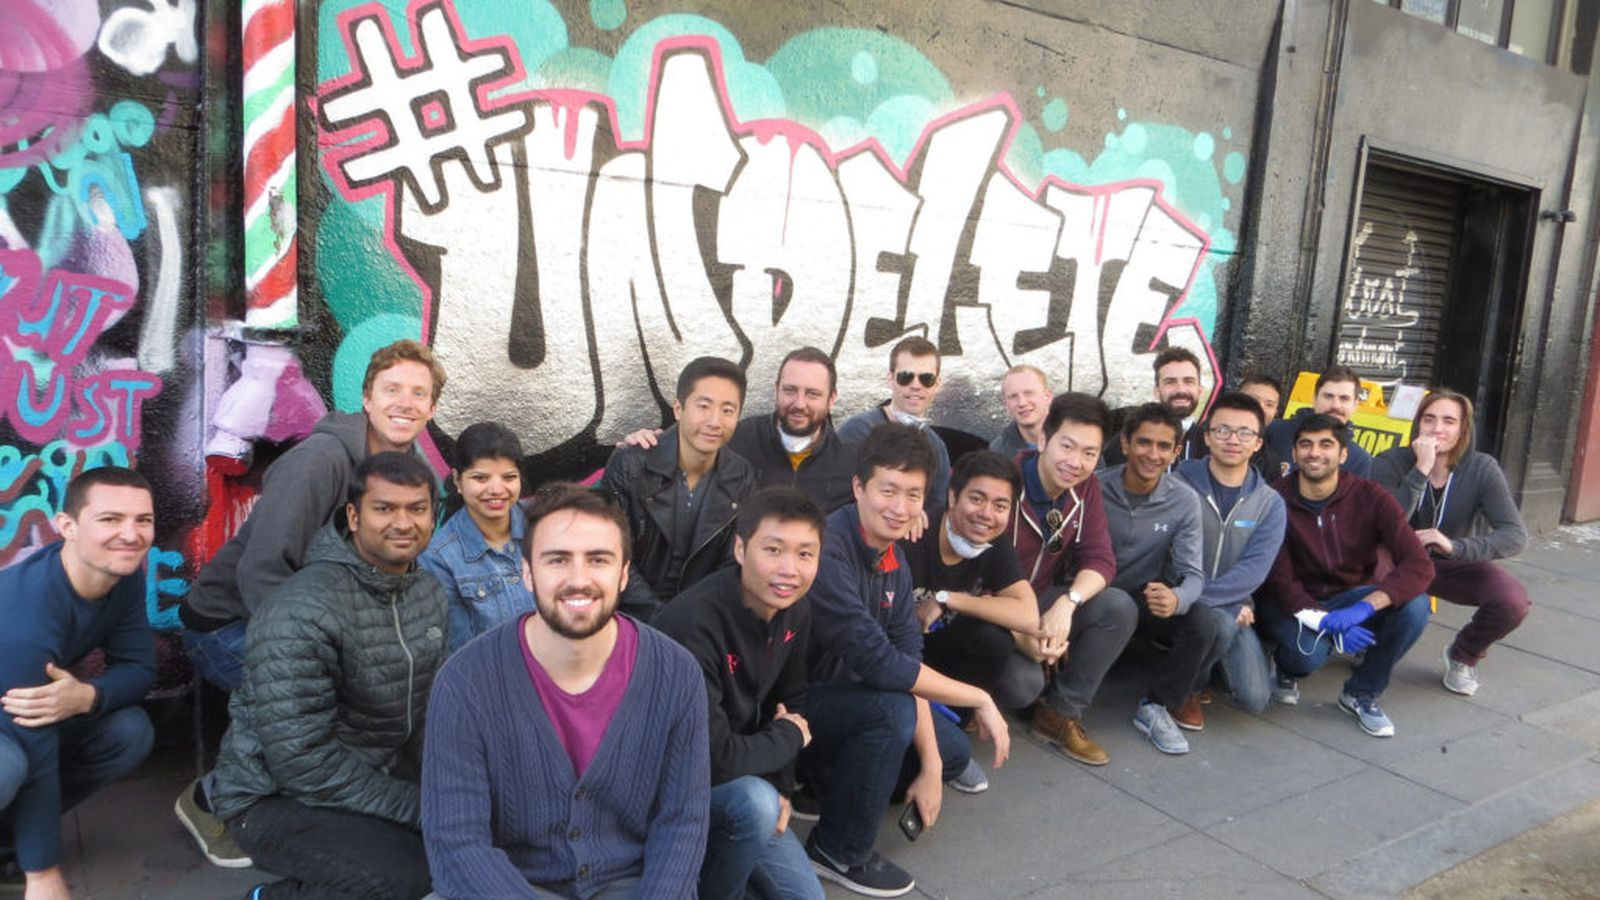 theverge.com - Uber employees spray-painted a wall with the word 'Undelete'